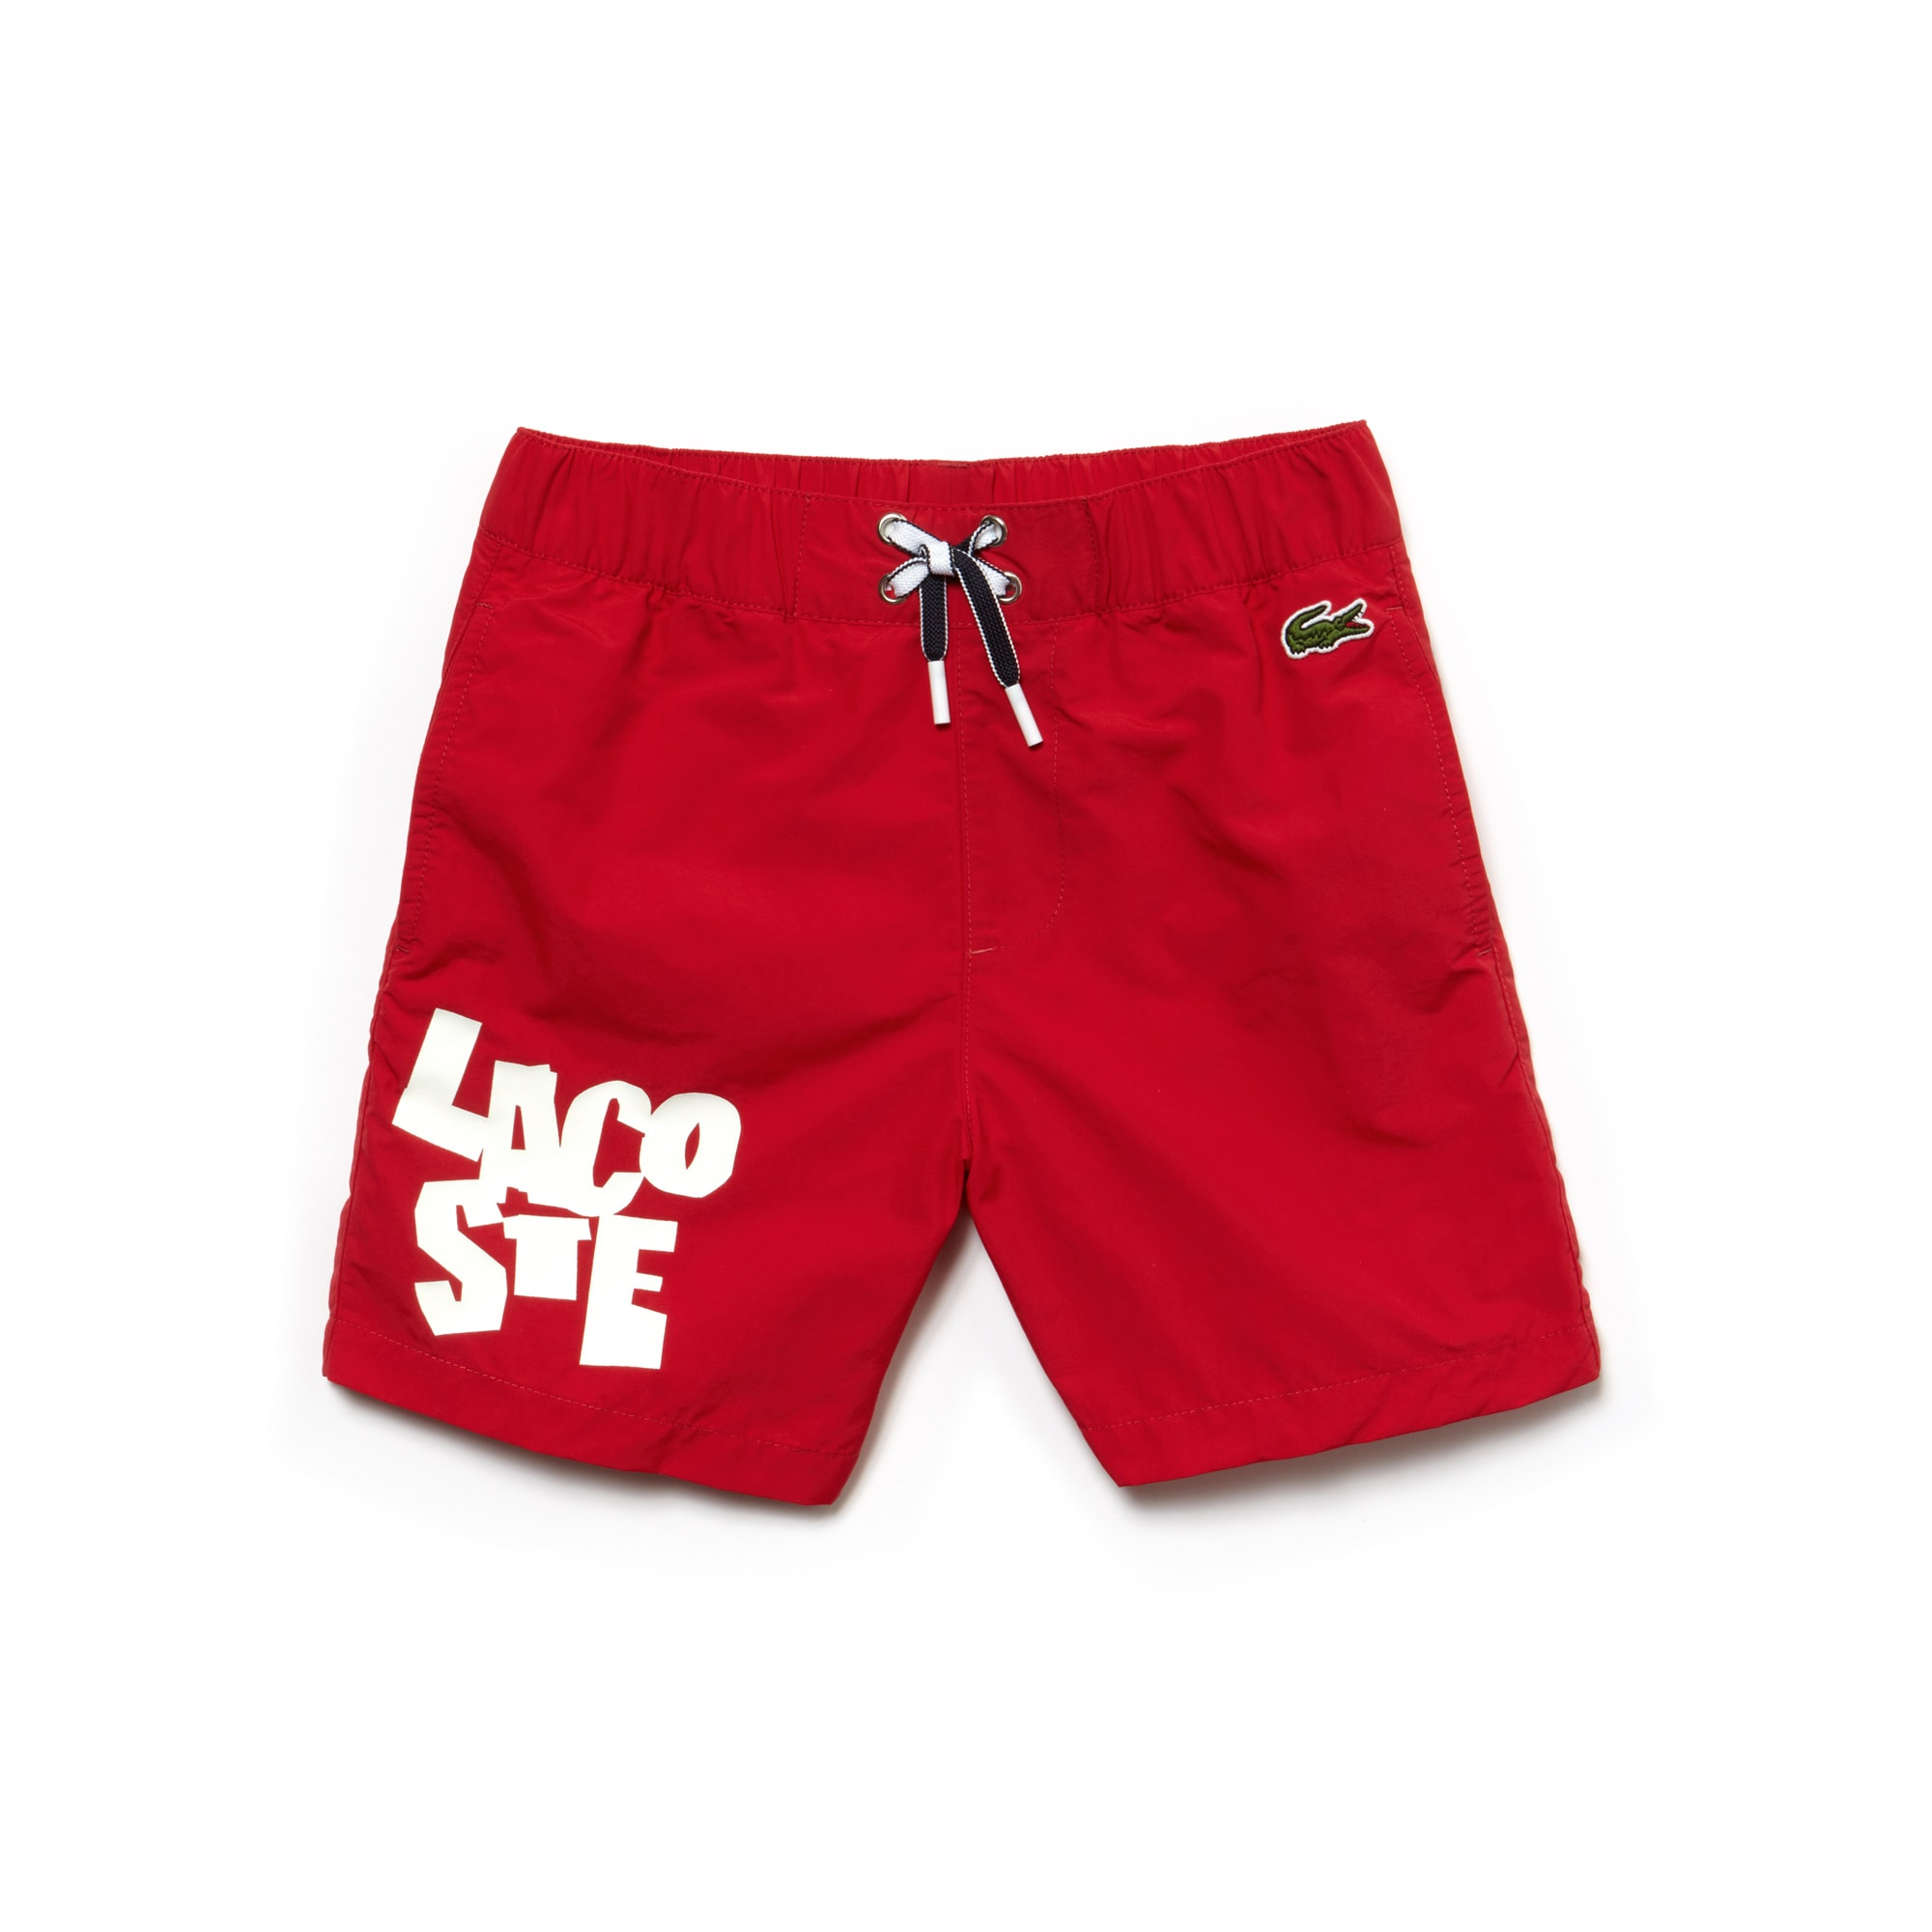 Boys' Lettering Canvas Swimming Trunks